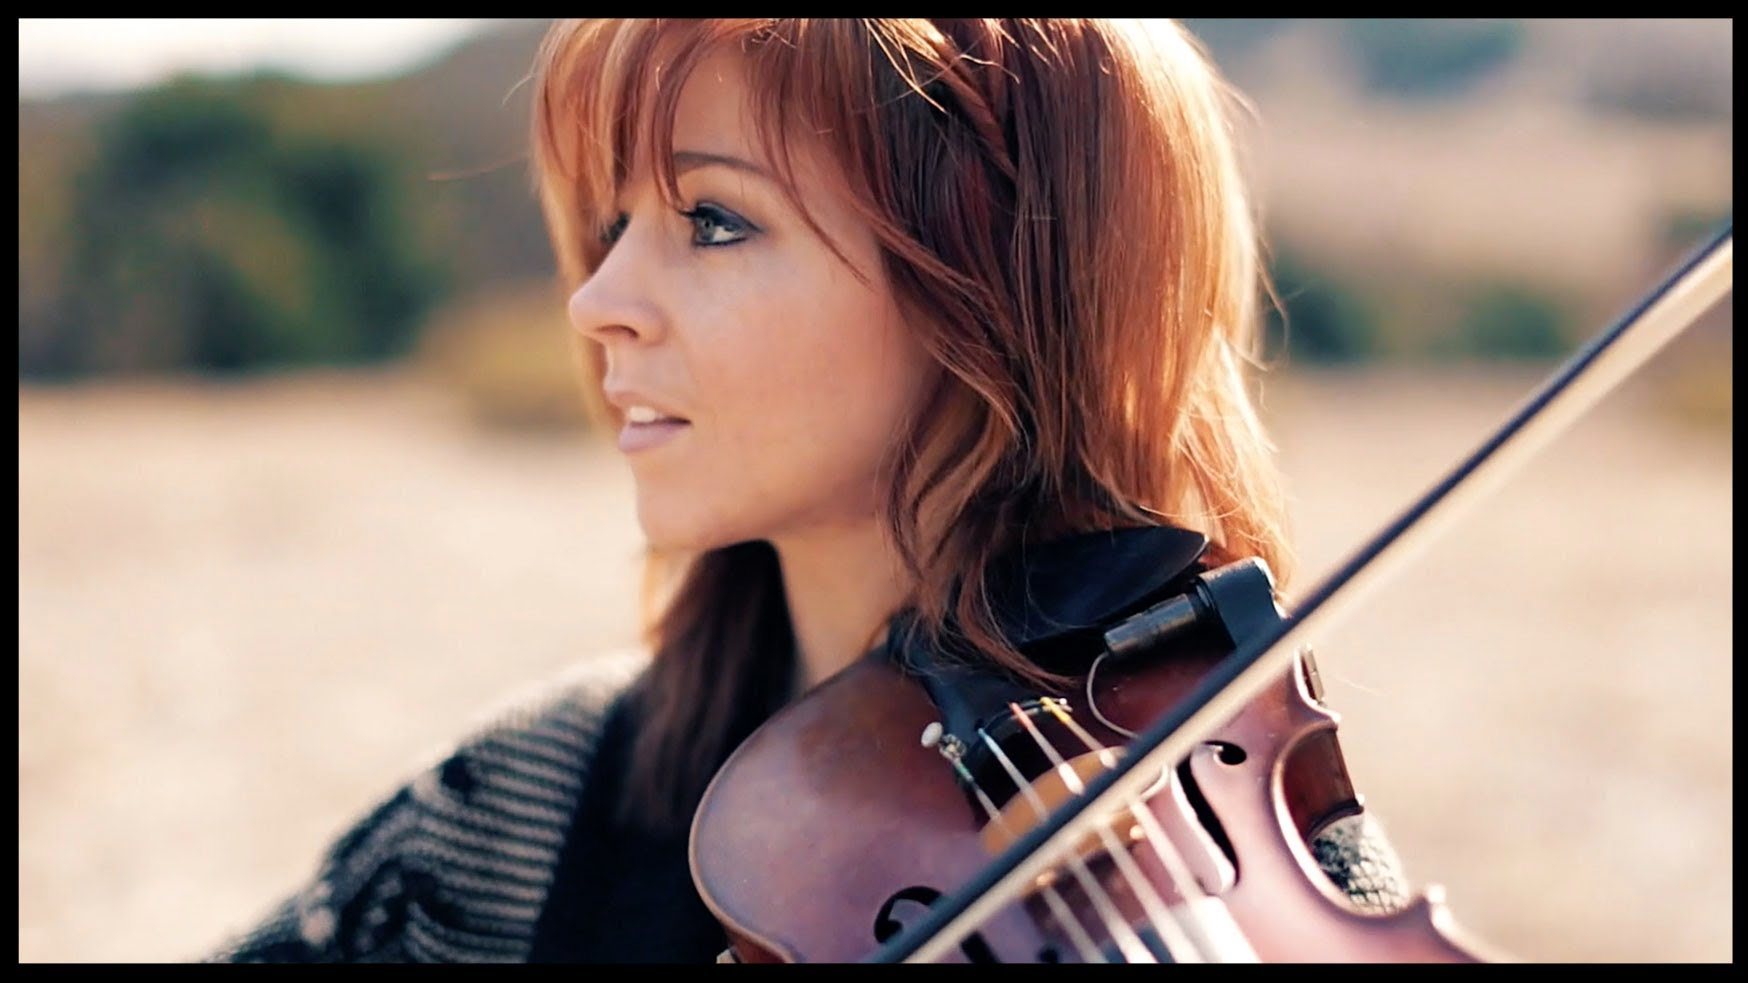 HQ Lindsey Stirling Wallpapers | File 141.28Kb